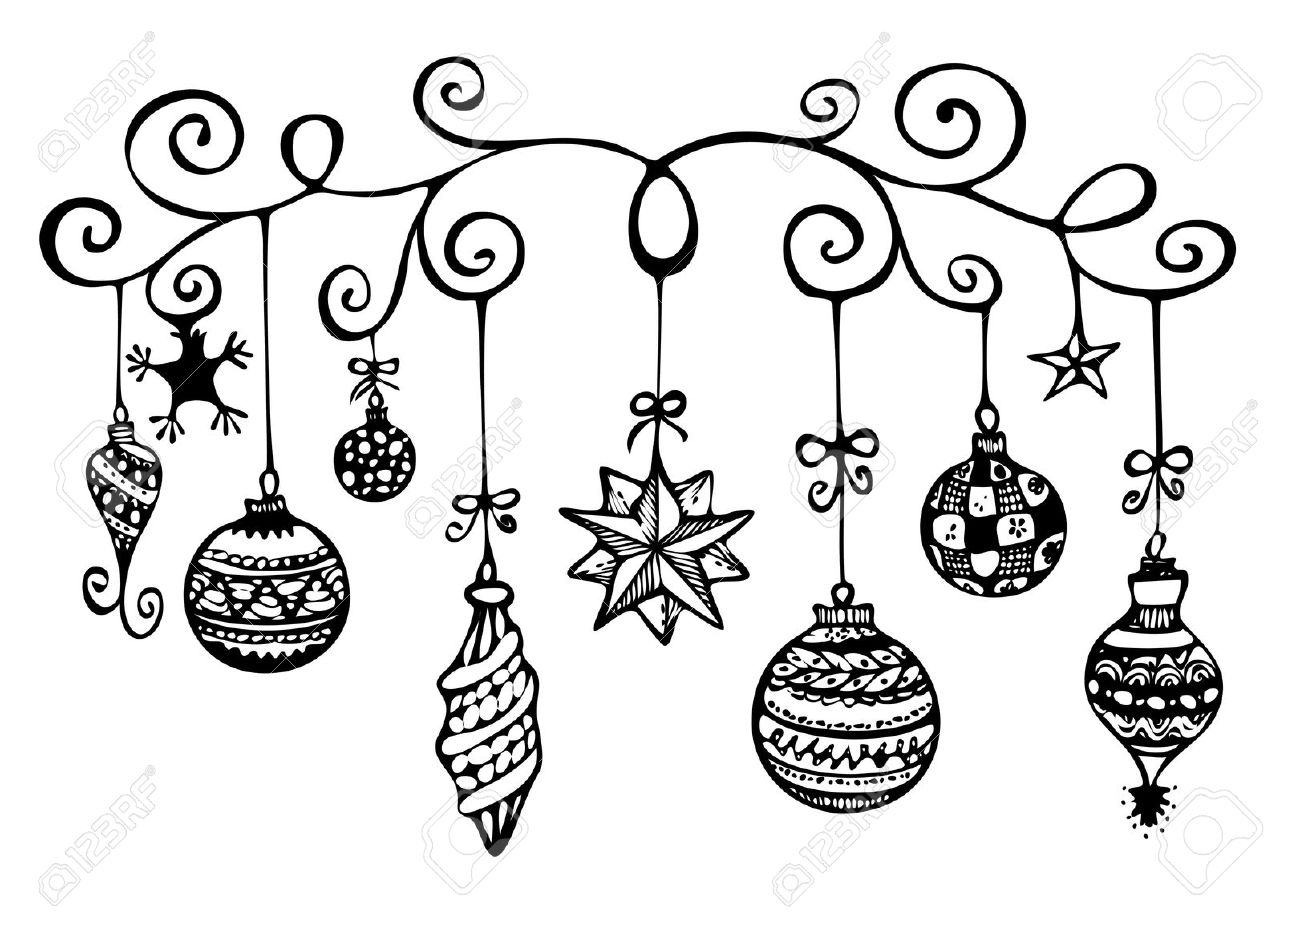 Christmas balls images free clipart black and white graphic freeuse library Christmas Drawings Black And White at PaintingValley.com | Explore ... graphic freeuse library